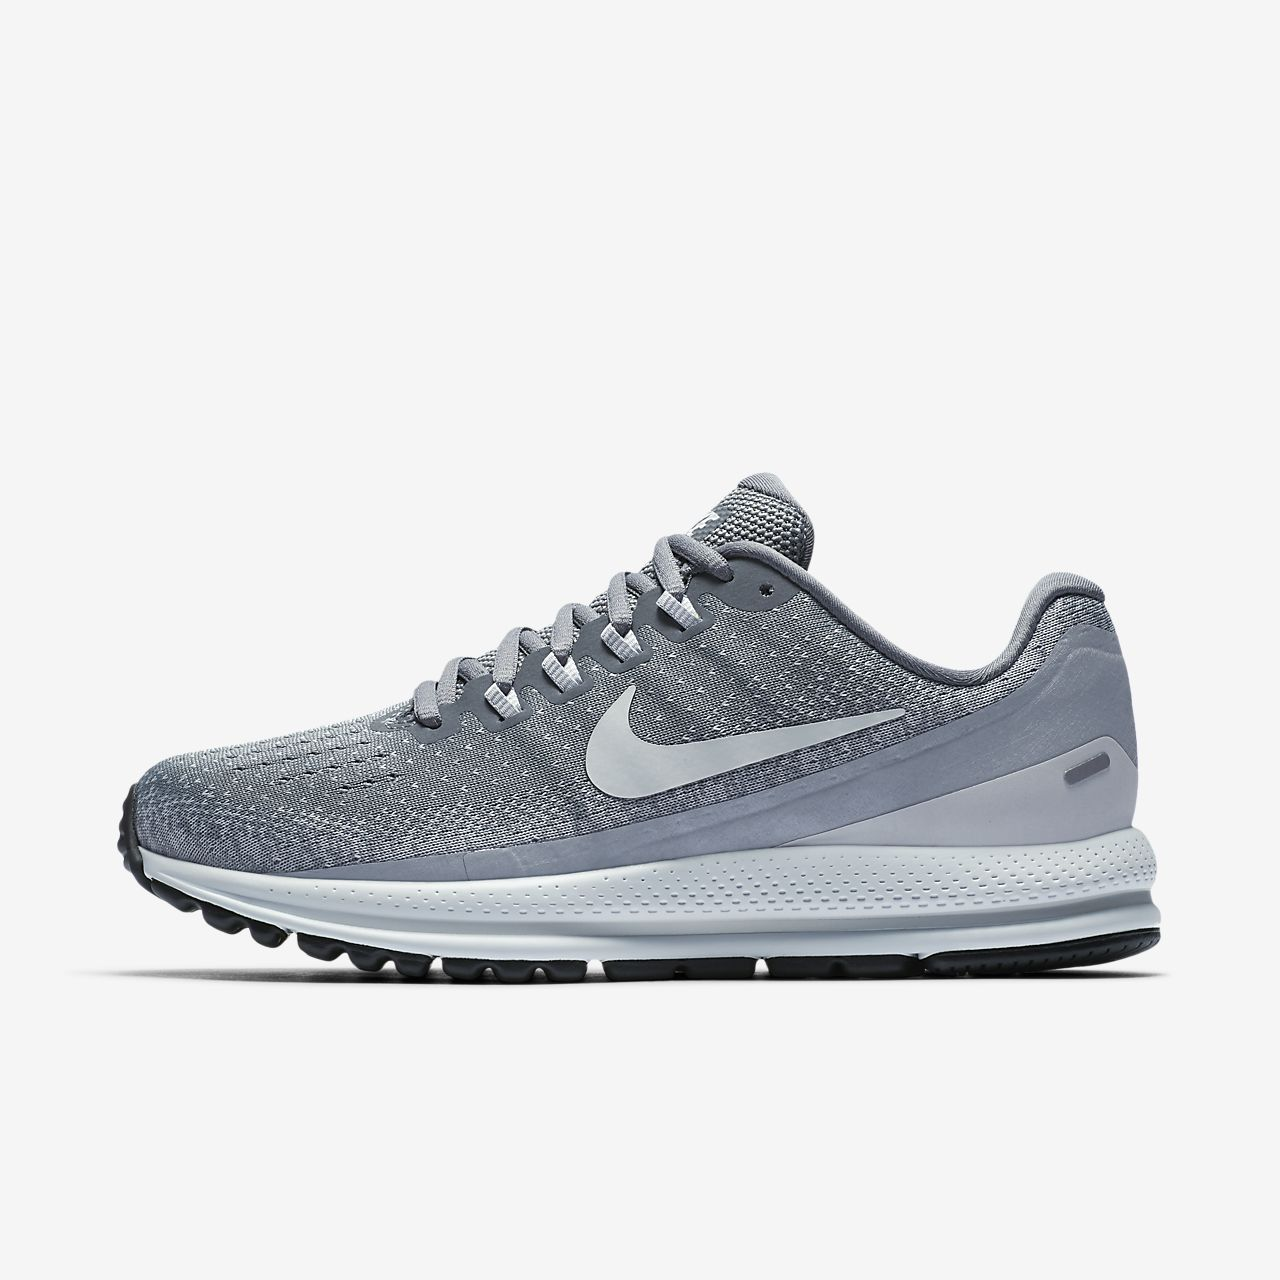 Chaussures pour pieds larges Nike Zoom femme mwqjgHfFuL